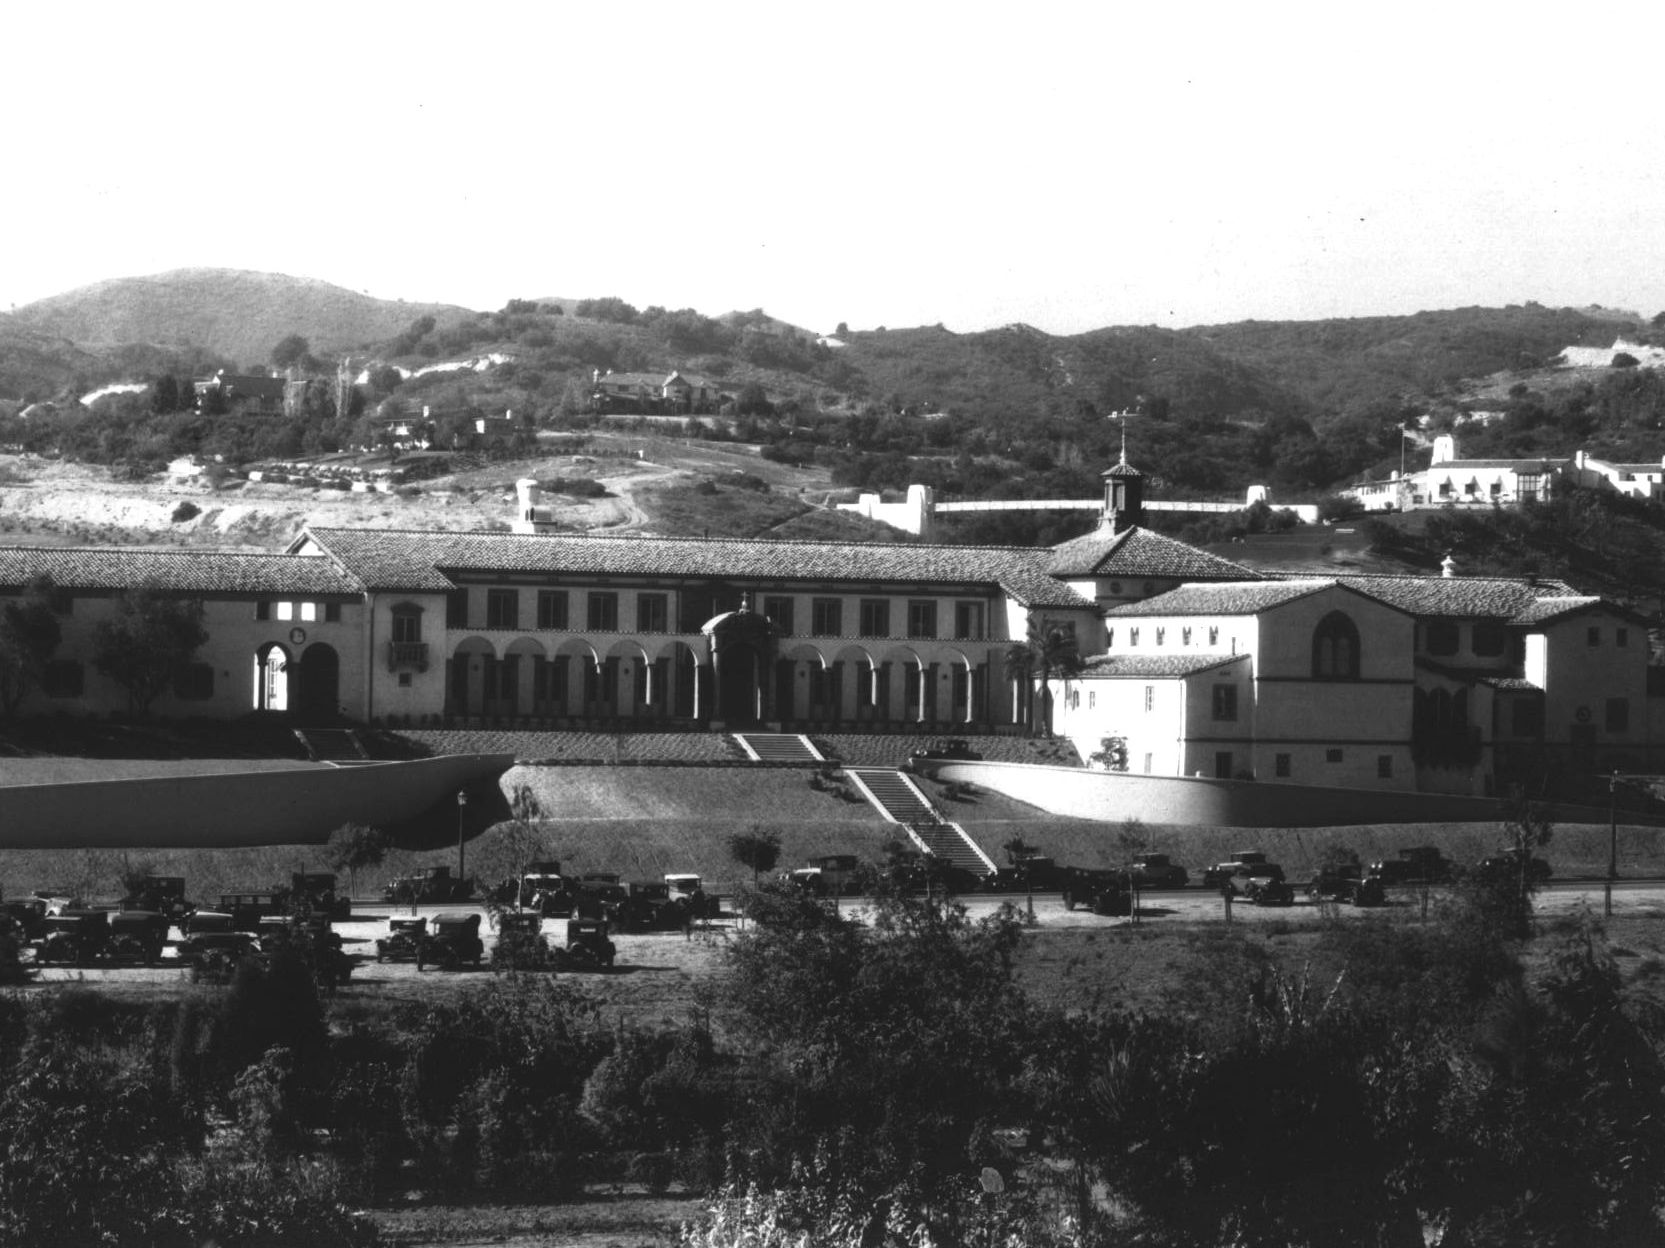 A view of Marymount, one year after our campus was built.